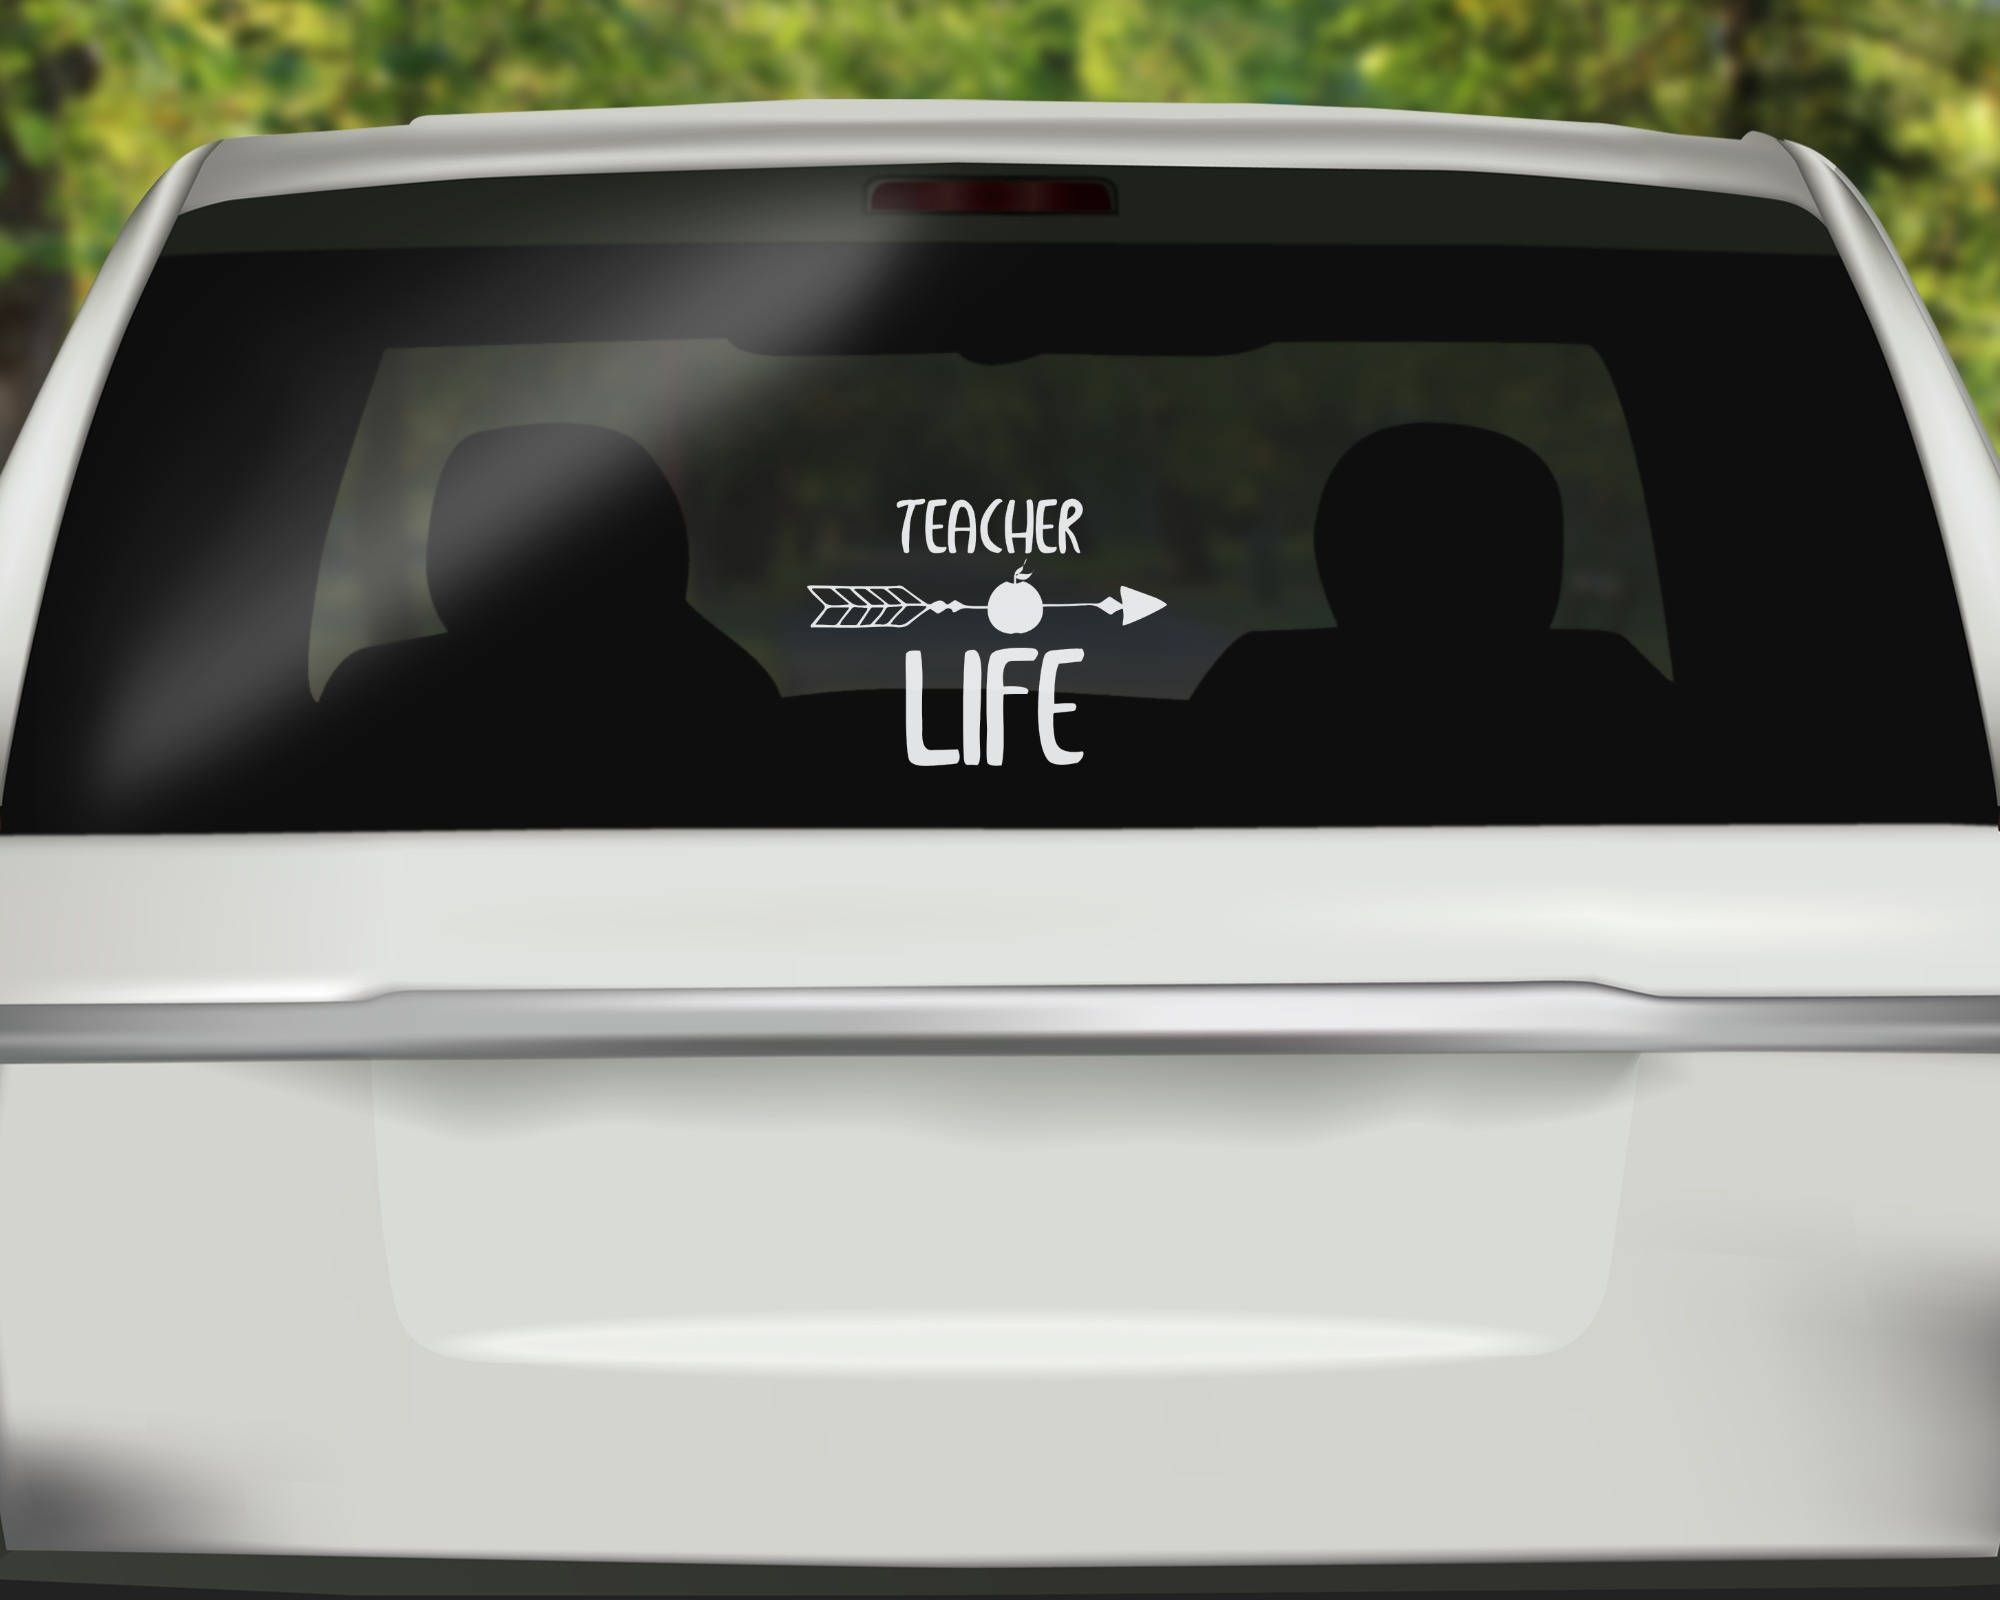 Teacher life decal school car decal educator sticker instructor car sticker bumper sticker vinyl decal car stickers by spencervinyl on etsy